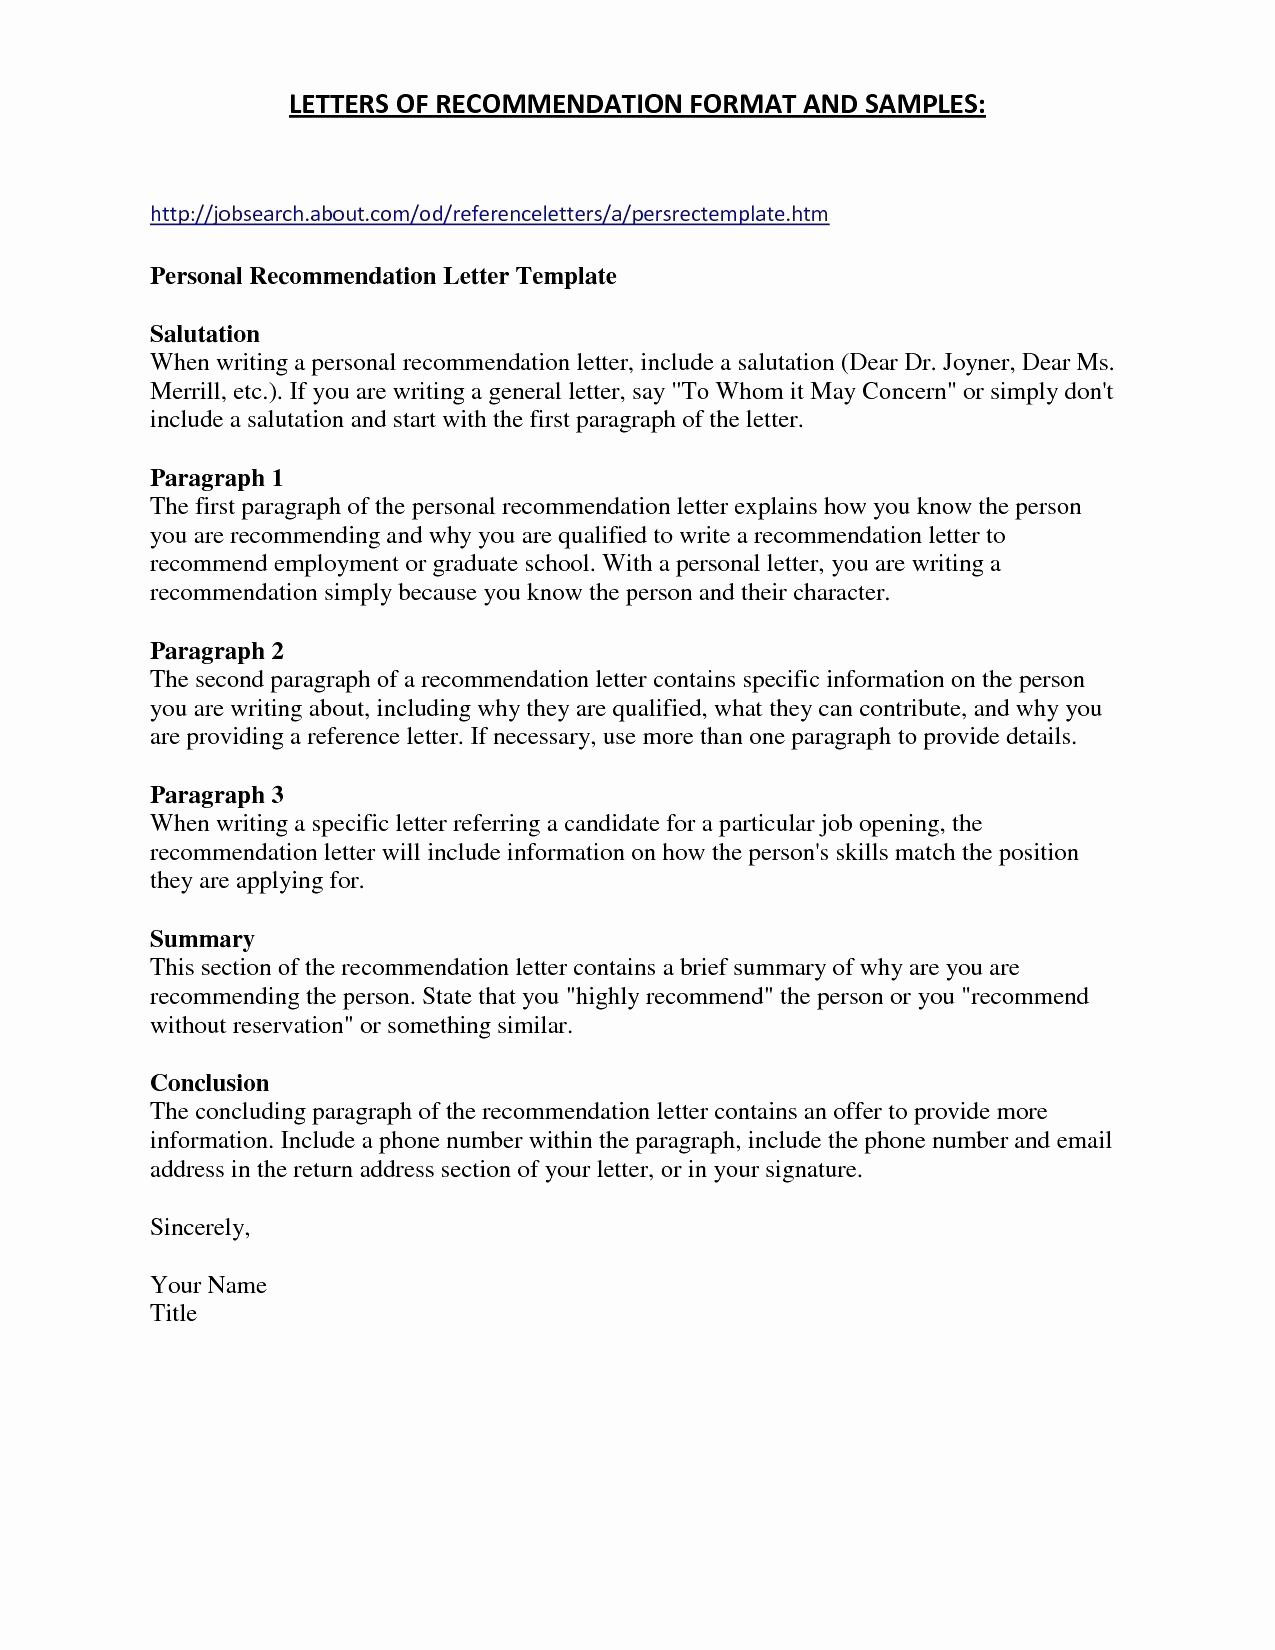 Resume Templates Latex - Resume Resume Template